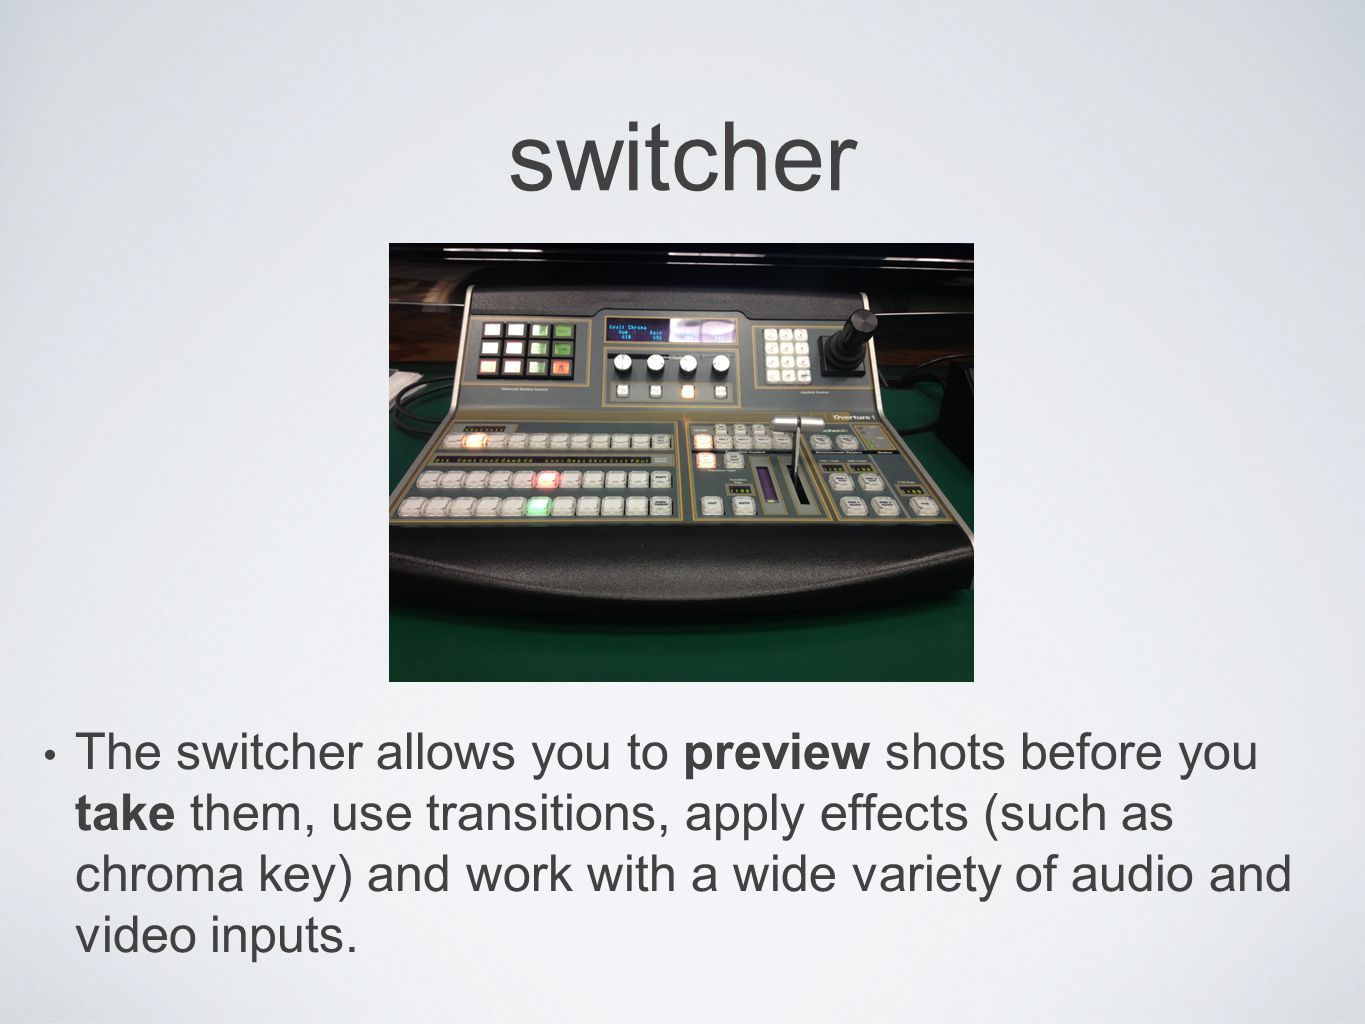 switcher The switcher allows you to preview shots before you take them, use transitions, apply effects (such as chroma key) and work with a wide variety of audio and video inputs.